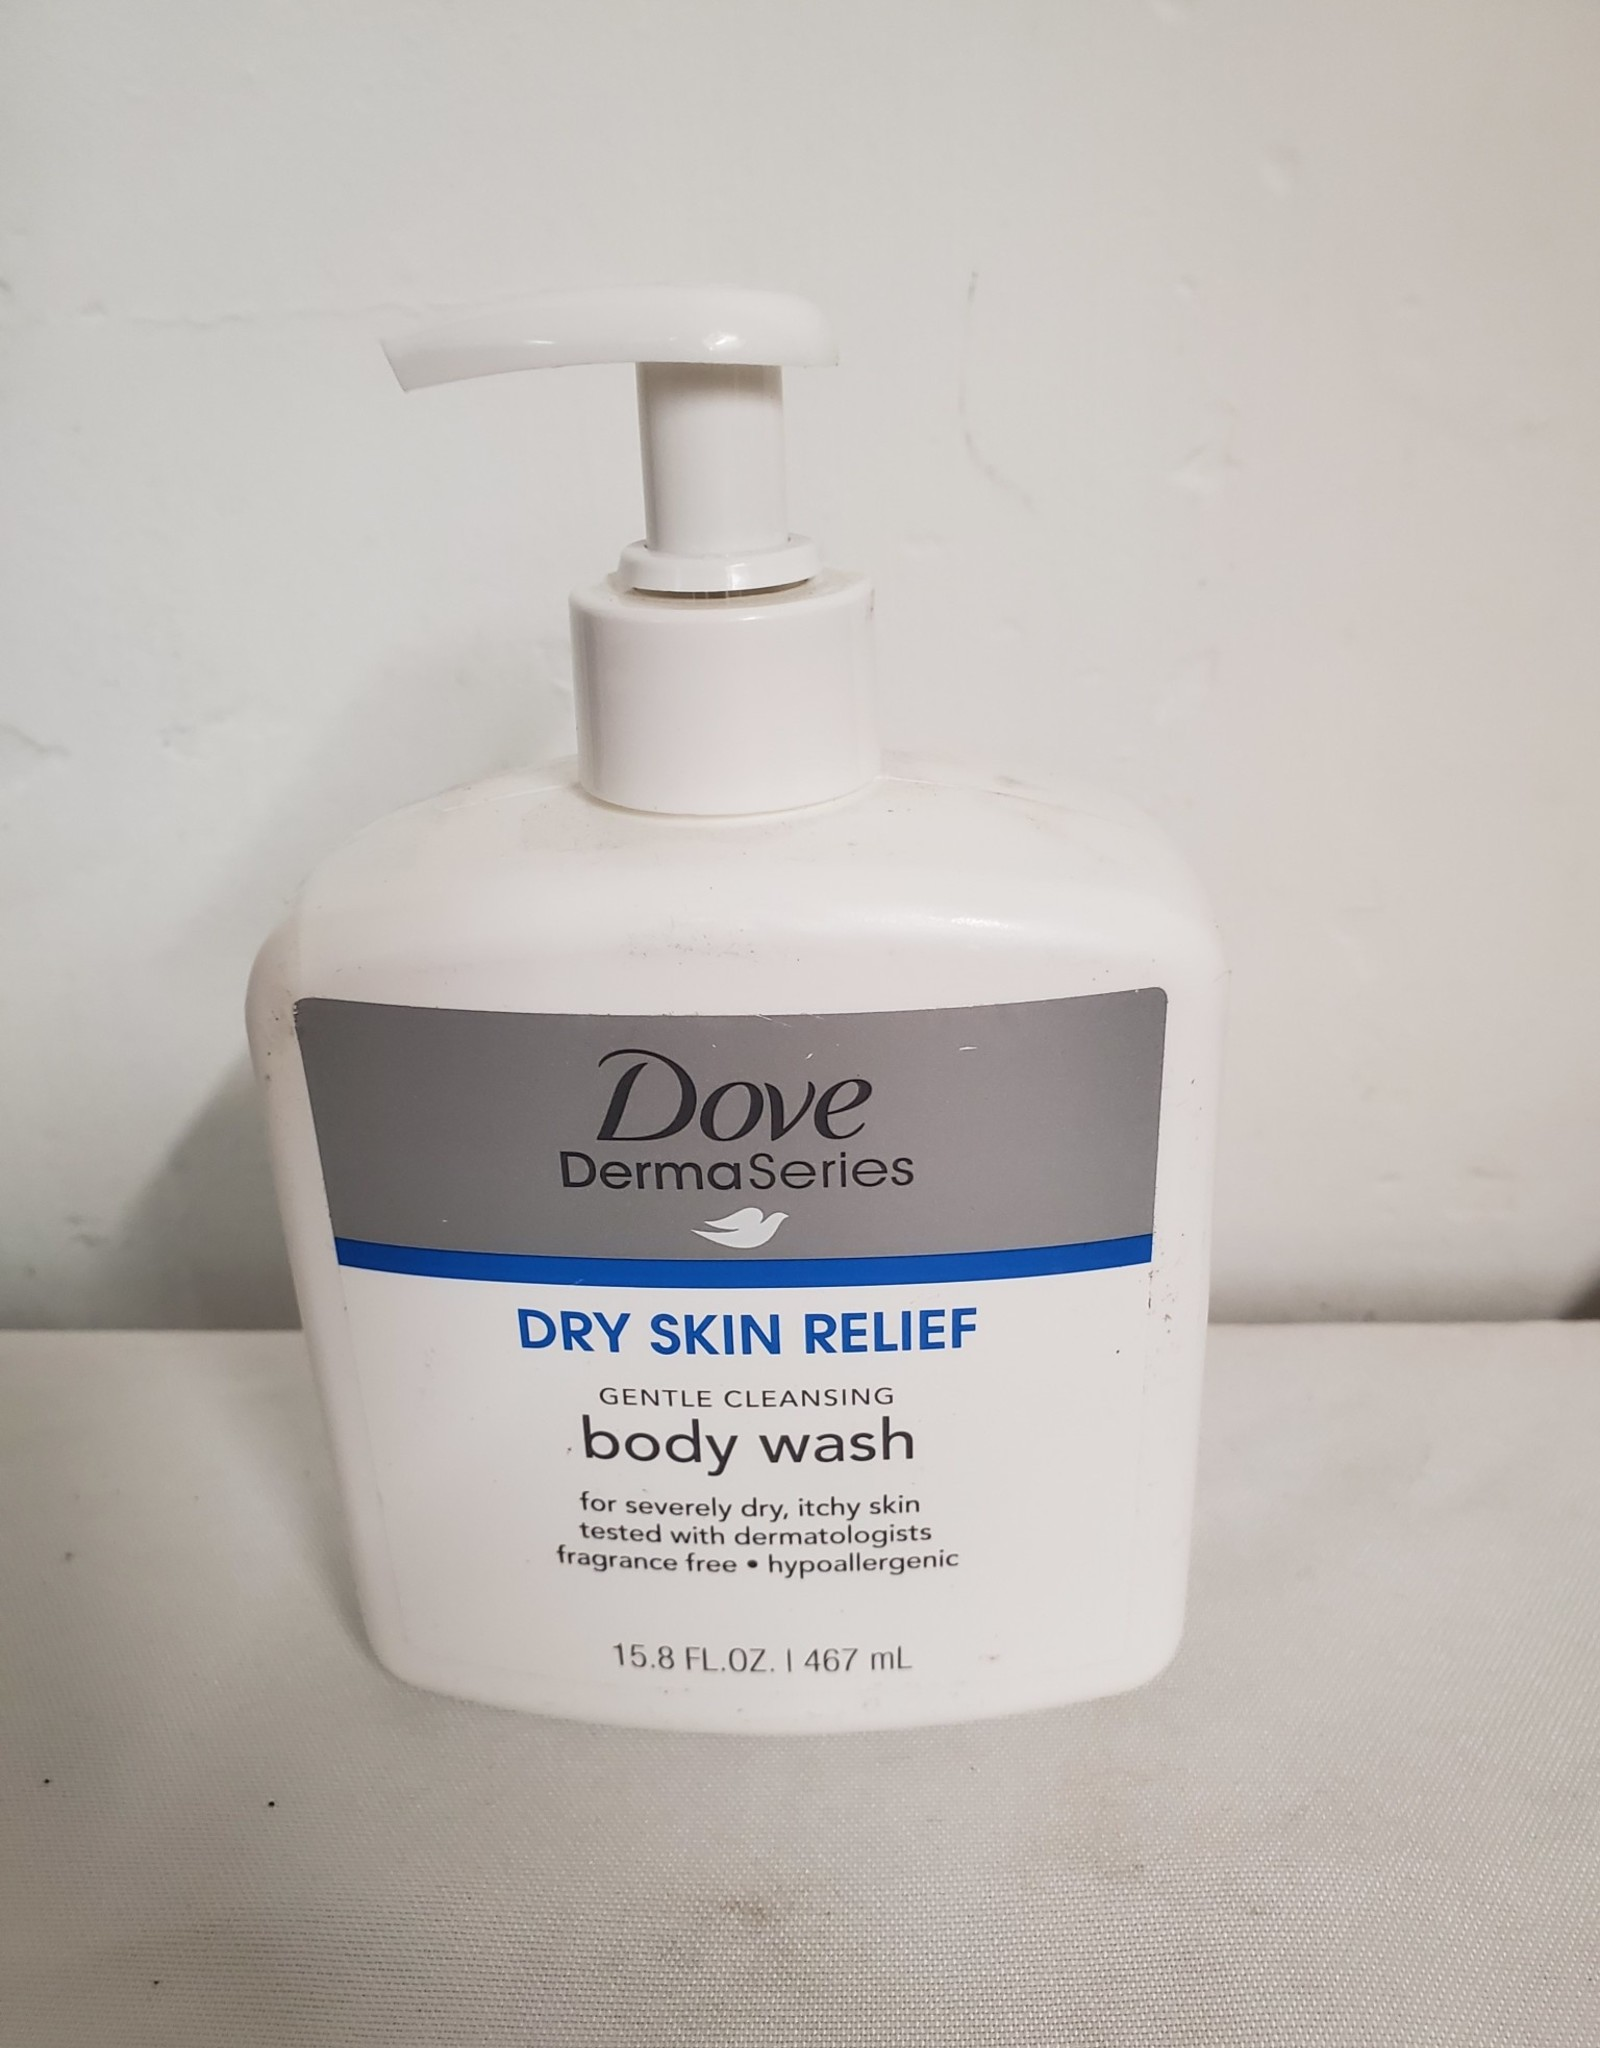 Dove Dermaseries Dry Skin Relief Gentle Cleansing Body Wash D3 Surplus Outlet